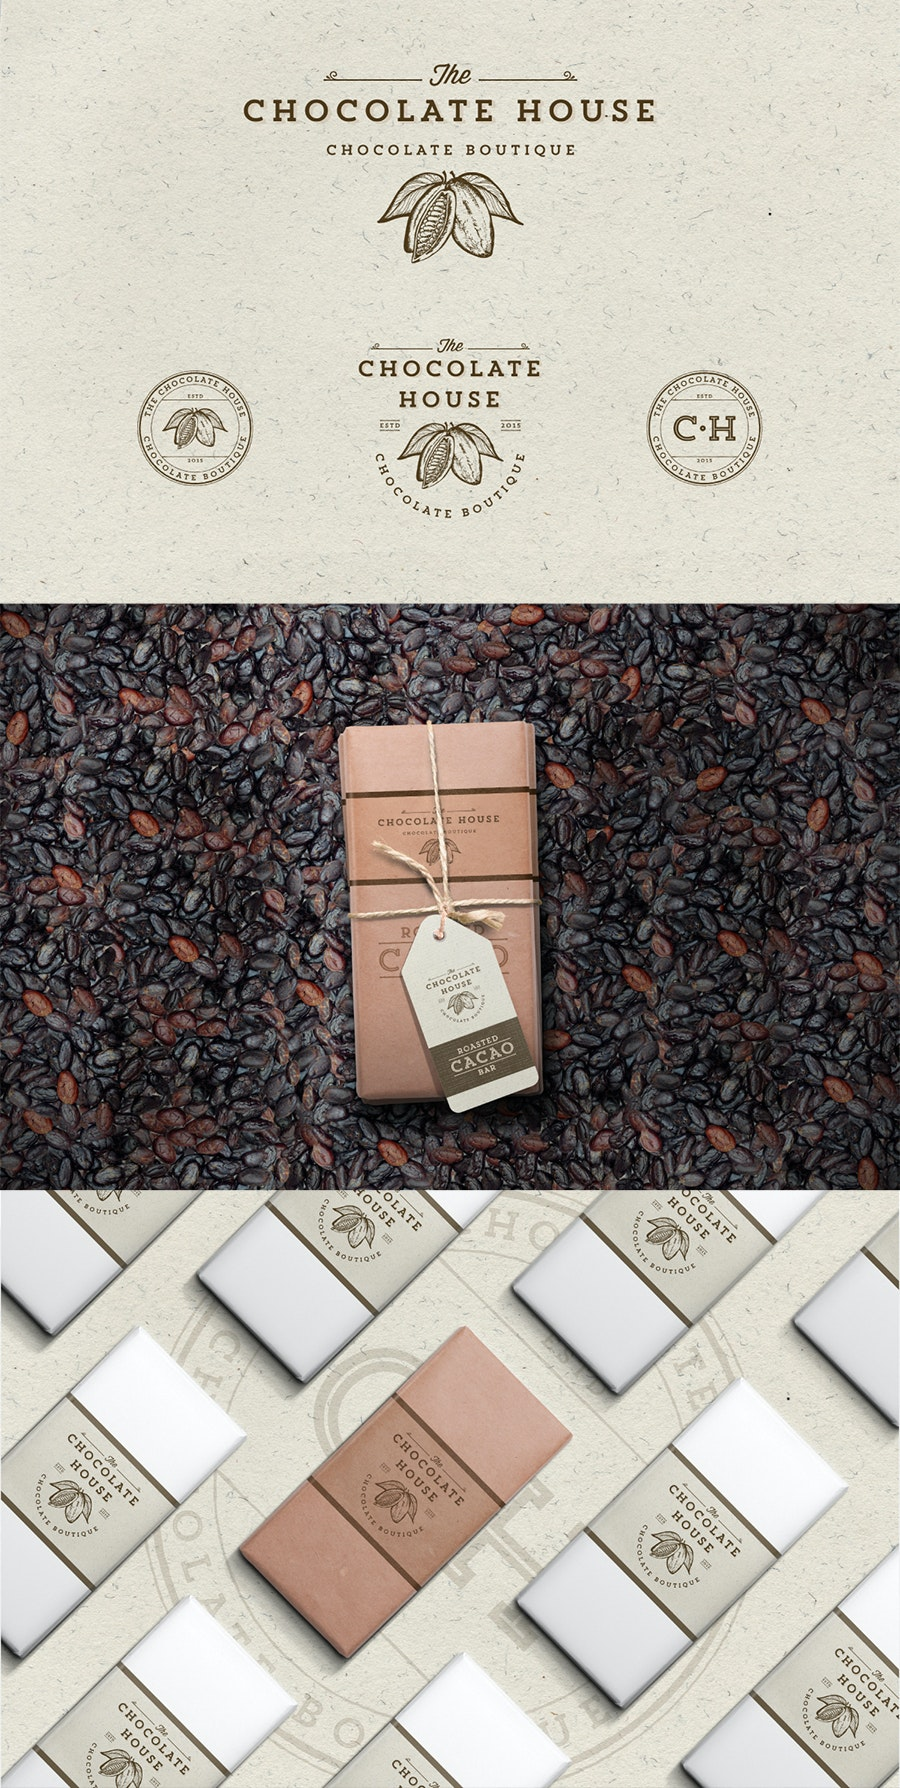 The Chocolate House branding